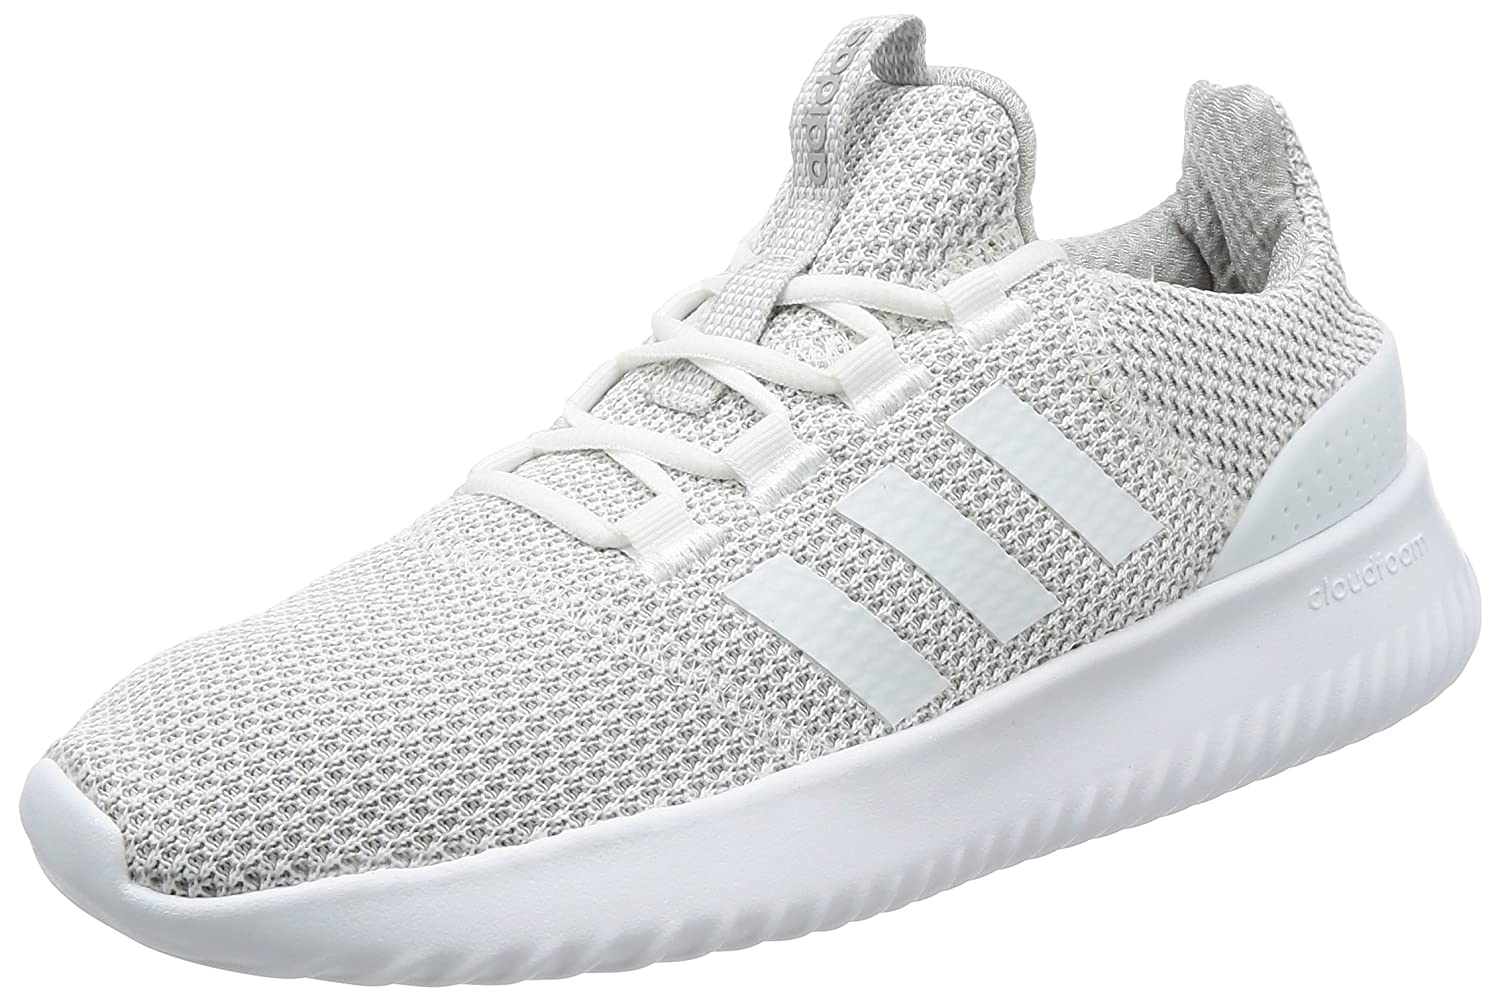 adidas Cloudfoam Ultimate, Zapatillas de Deporte Unisex Adulto